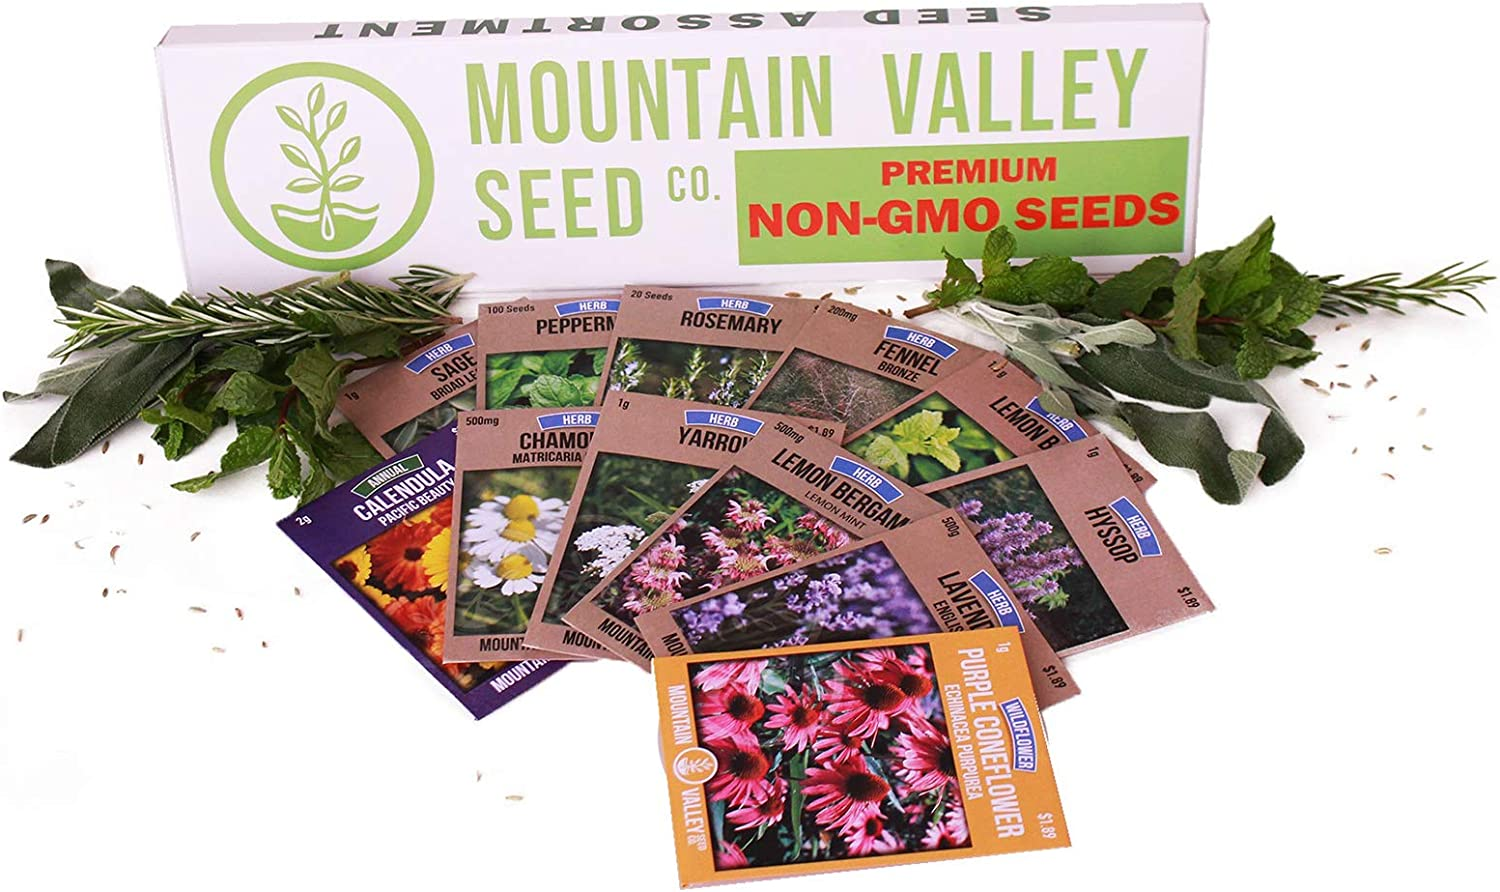 Medicinal & Herbal Tea Garden Seed Collection | Deluxe Assortment | 12 Non-GMO Herb Seed Packets: Sage, Rosemary, Fennel, Lemon Balm, Hyssop, Peppermint, & More